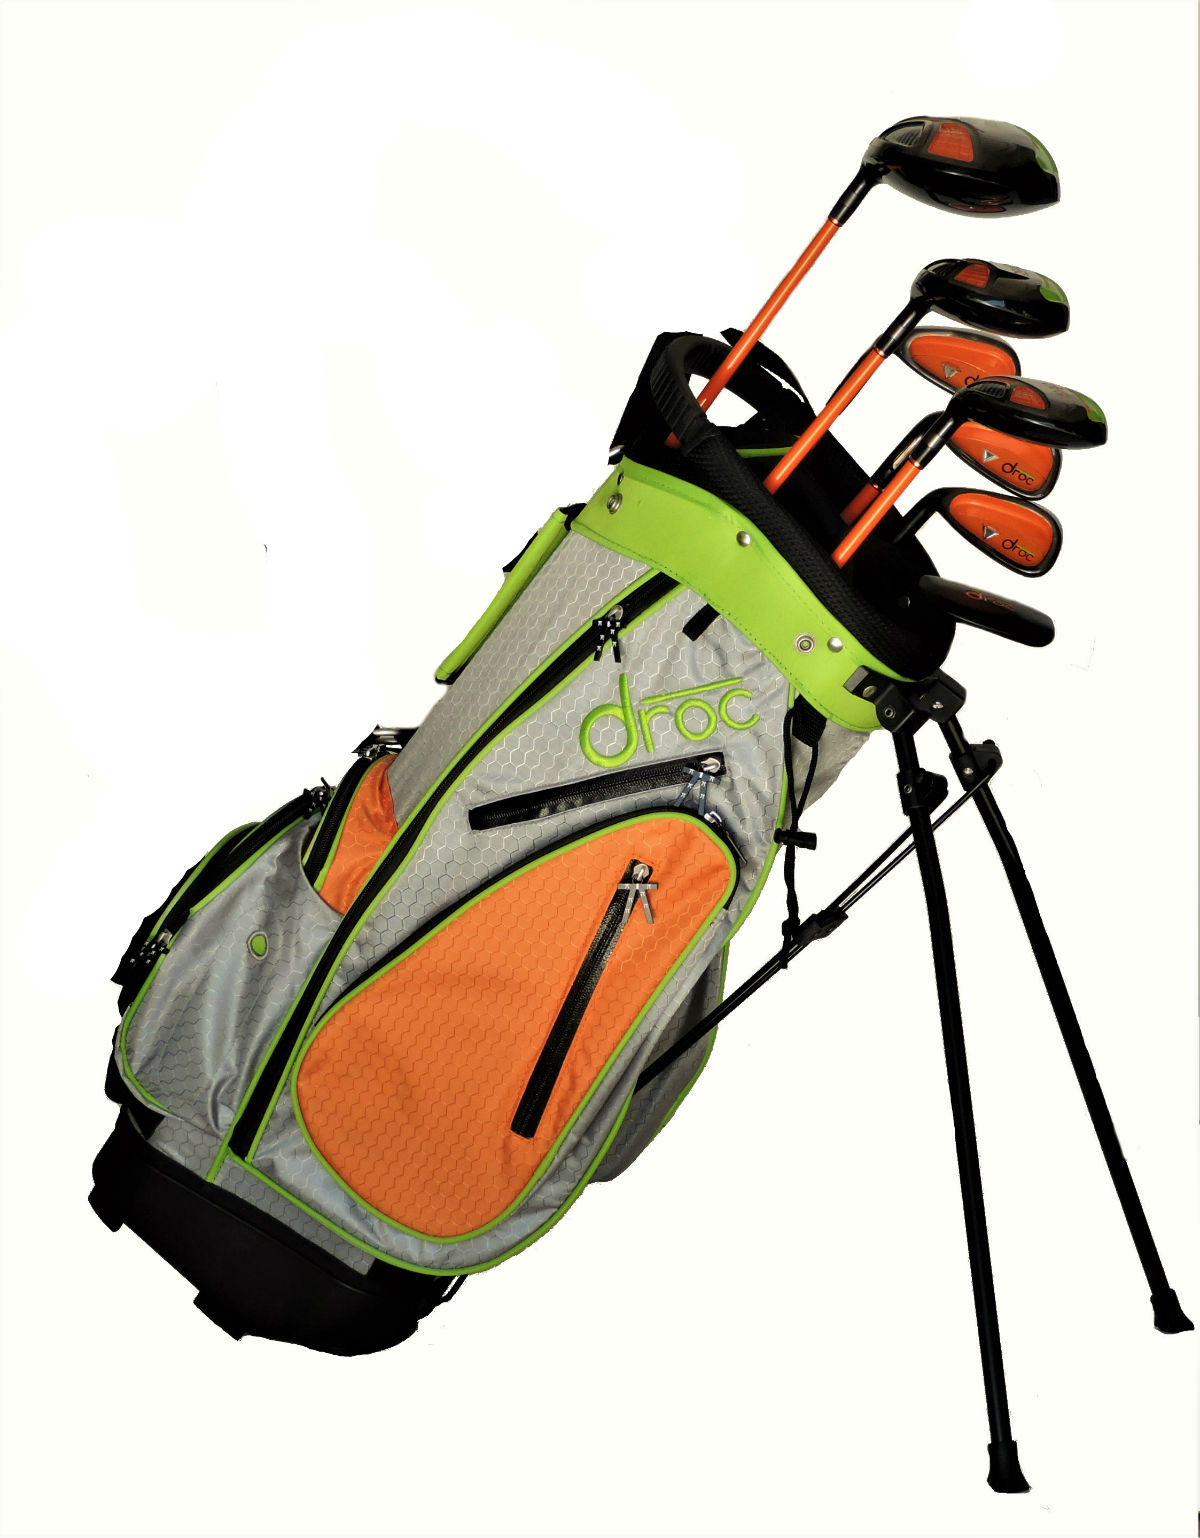 DROC - NOA Series *7*  Pcs Golf Club Set & Golf Bag Age 6-9 Left Handed